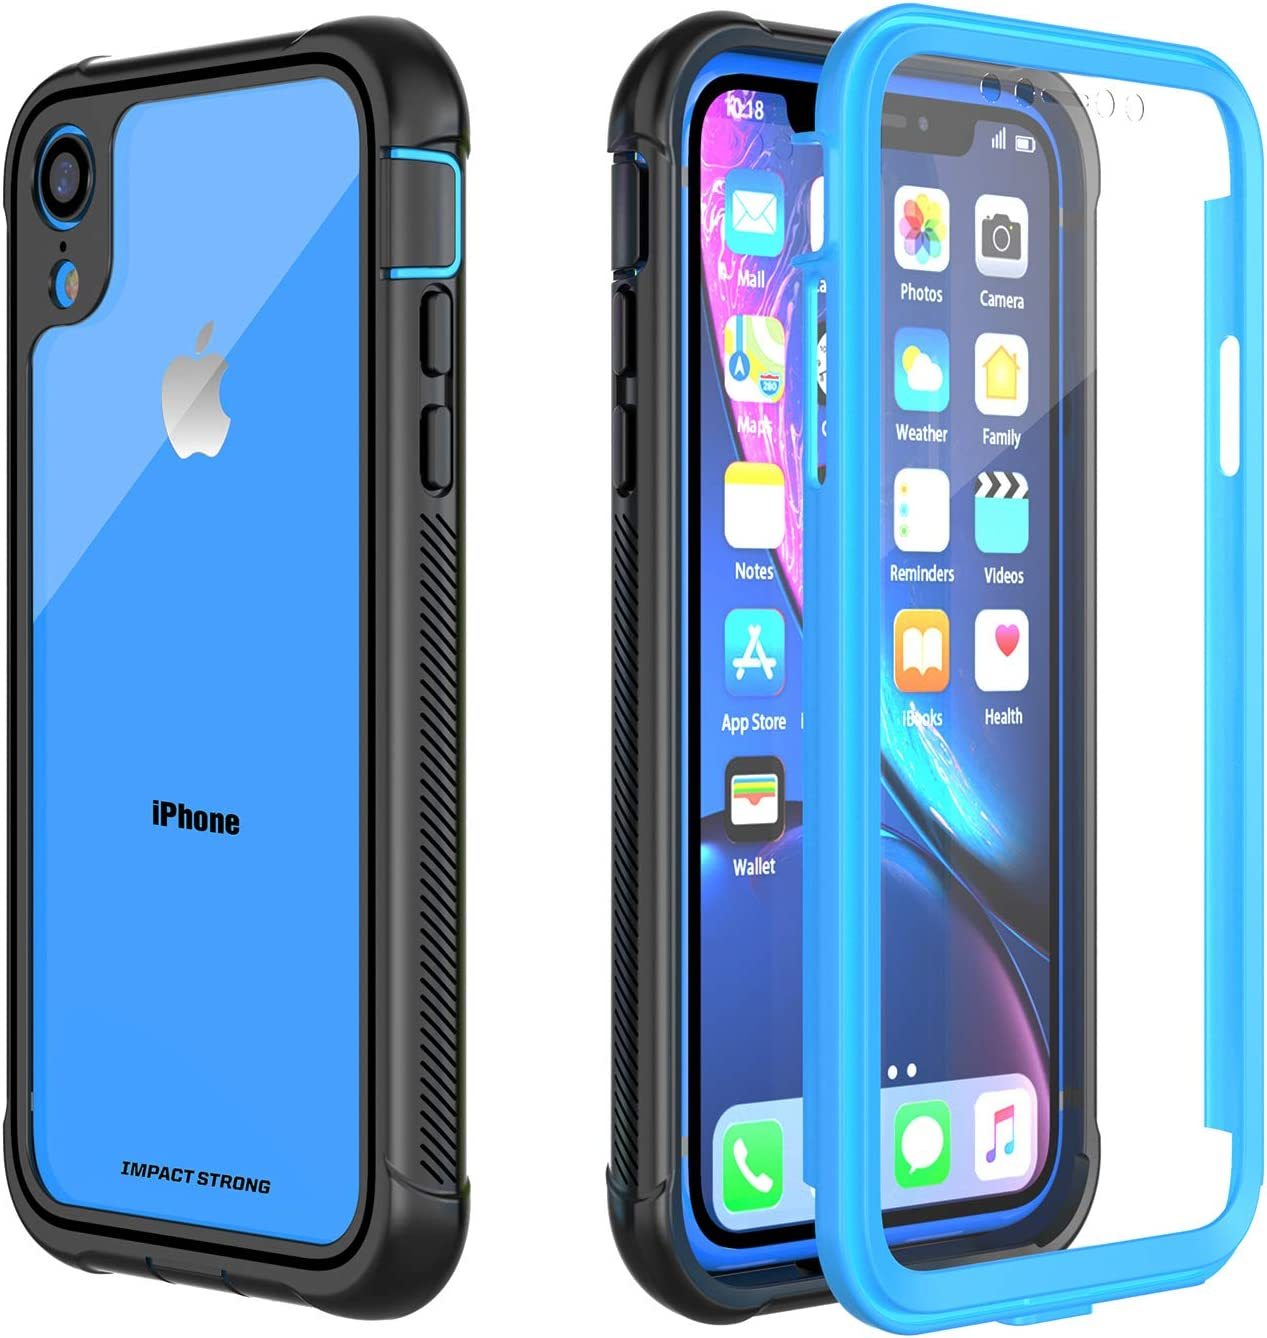 iPhone XR Clear Case, ImpactStrong Ultra Protective Case with Built-in Clear Screen Protector Dust Proof Design Clear Transparent Full Body Cover for iPhone XR 2018 6.1 inch (Blue)